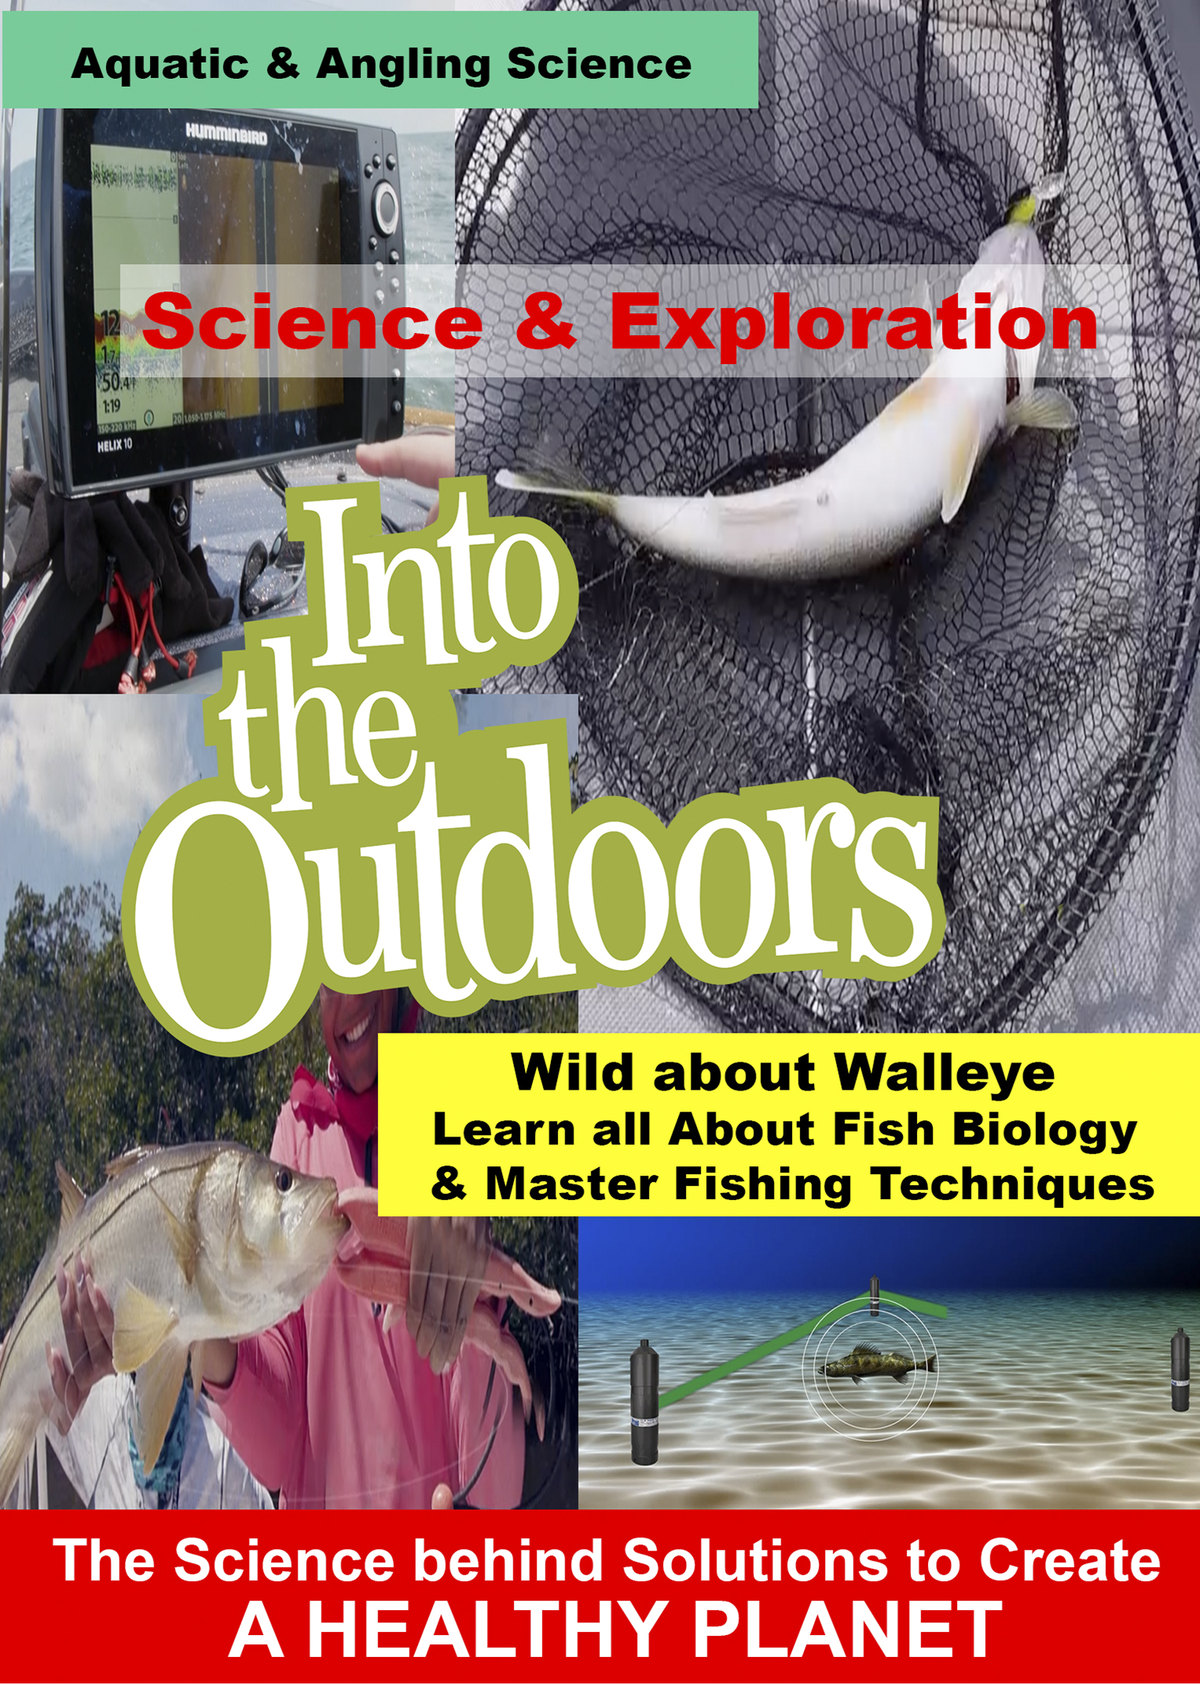 K5007 - Wild about Walleye - Learn all About Fish Biology, Master Fishing Techniques